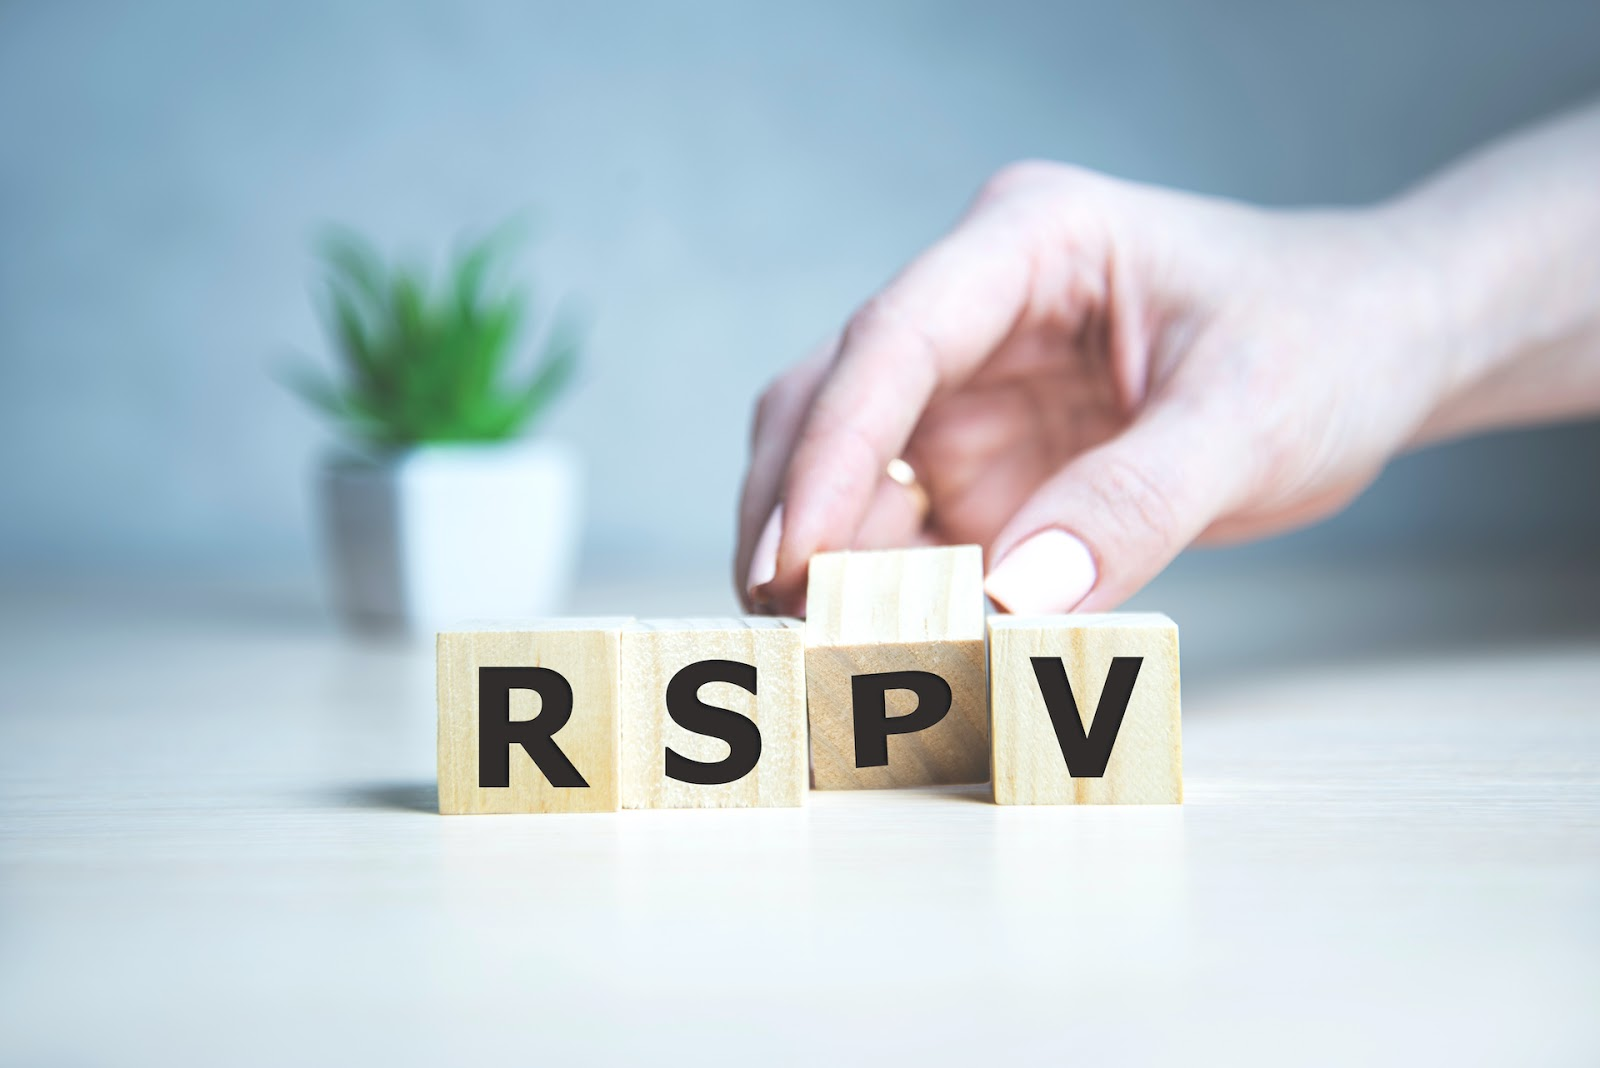 hand moving RSVP letters